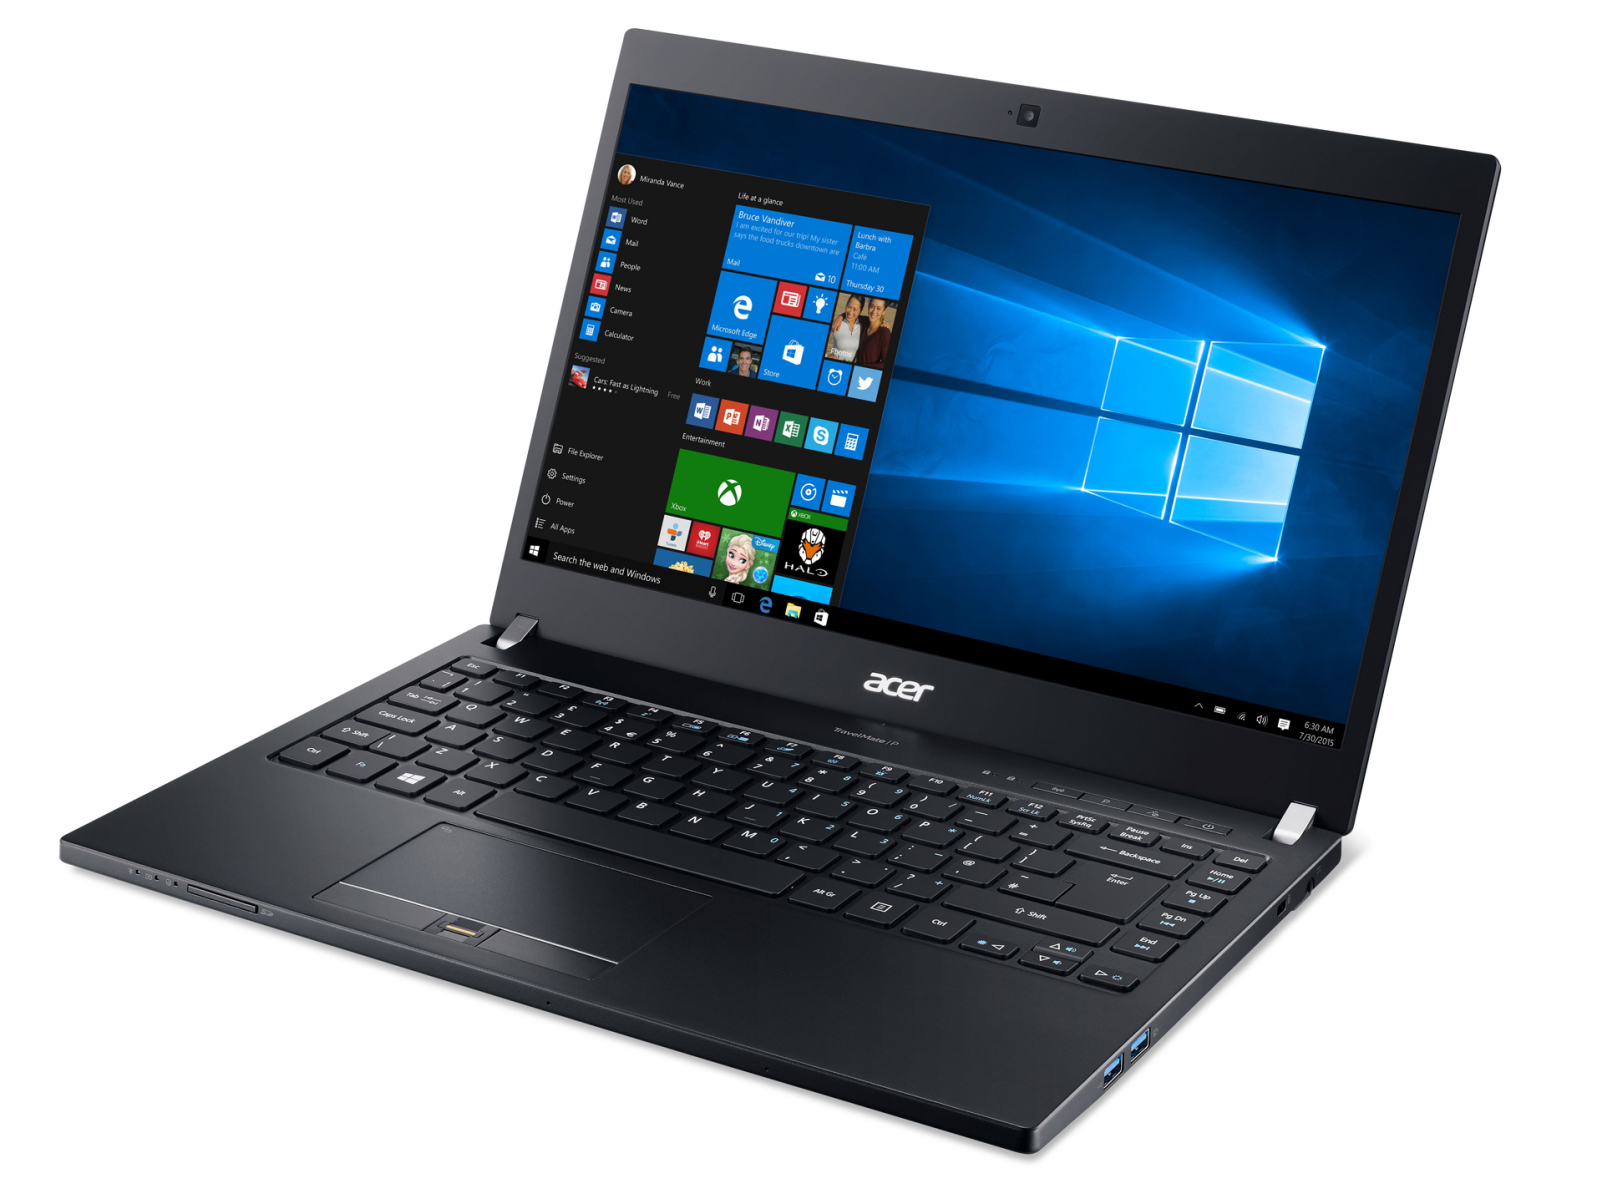 Acer TravelMate P653-V Intel Graphics XP